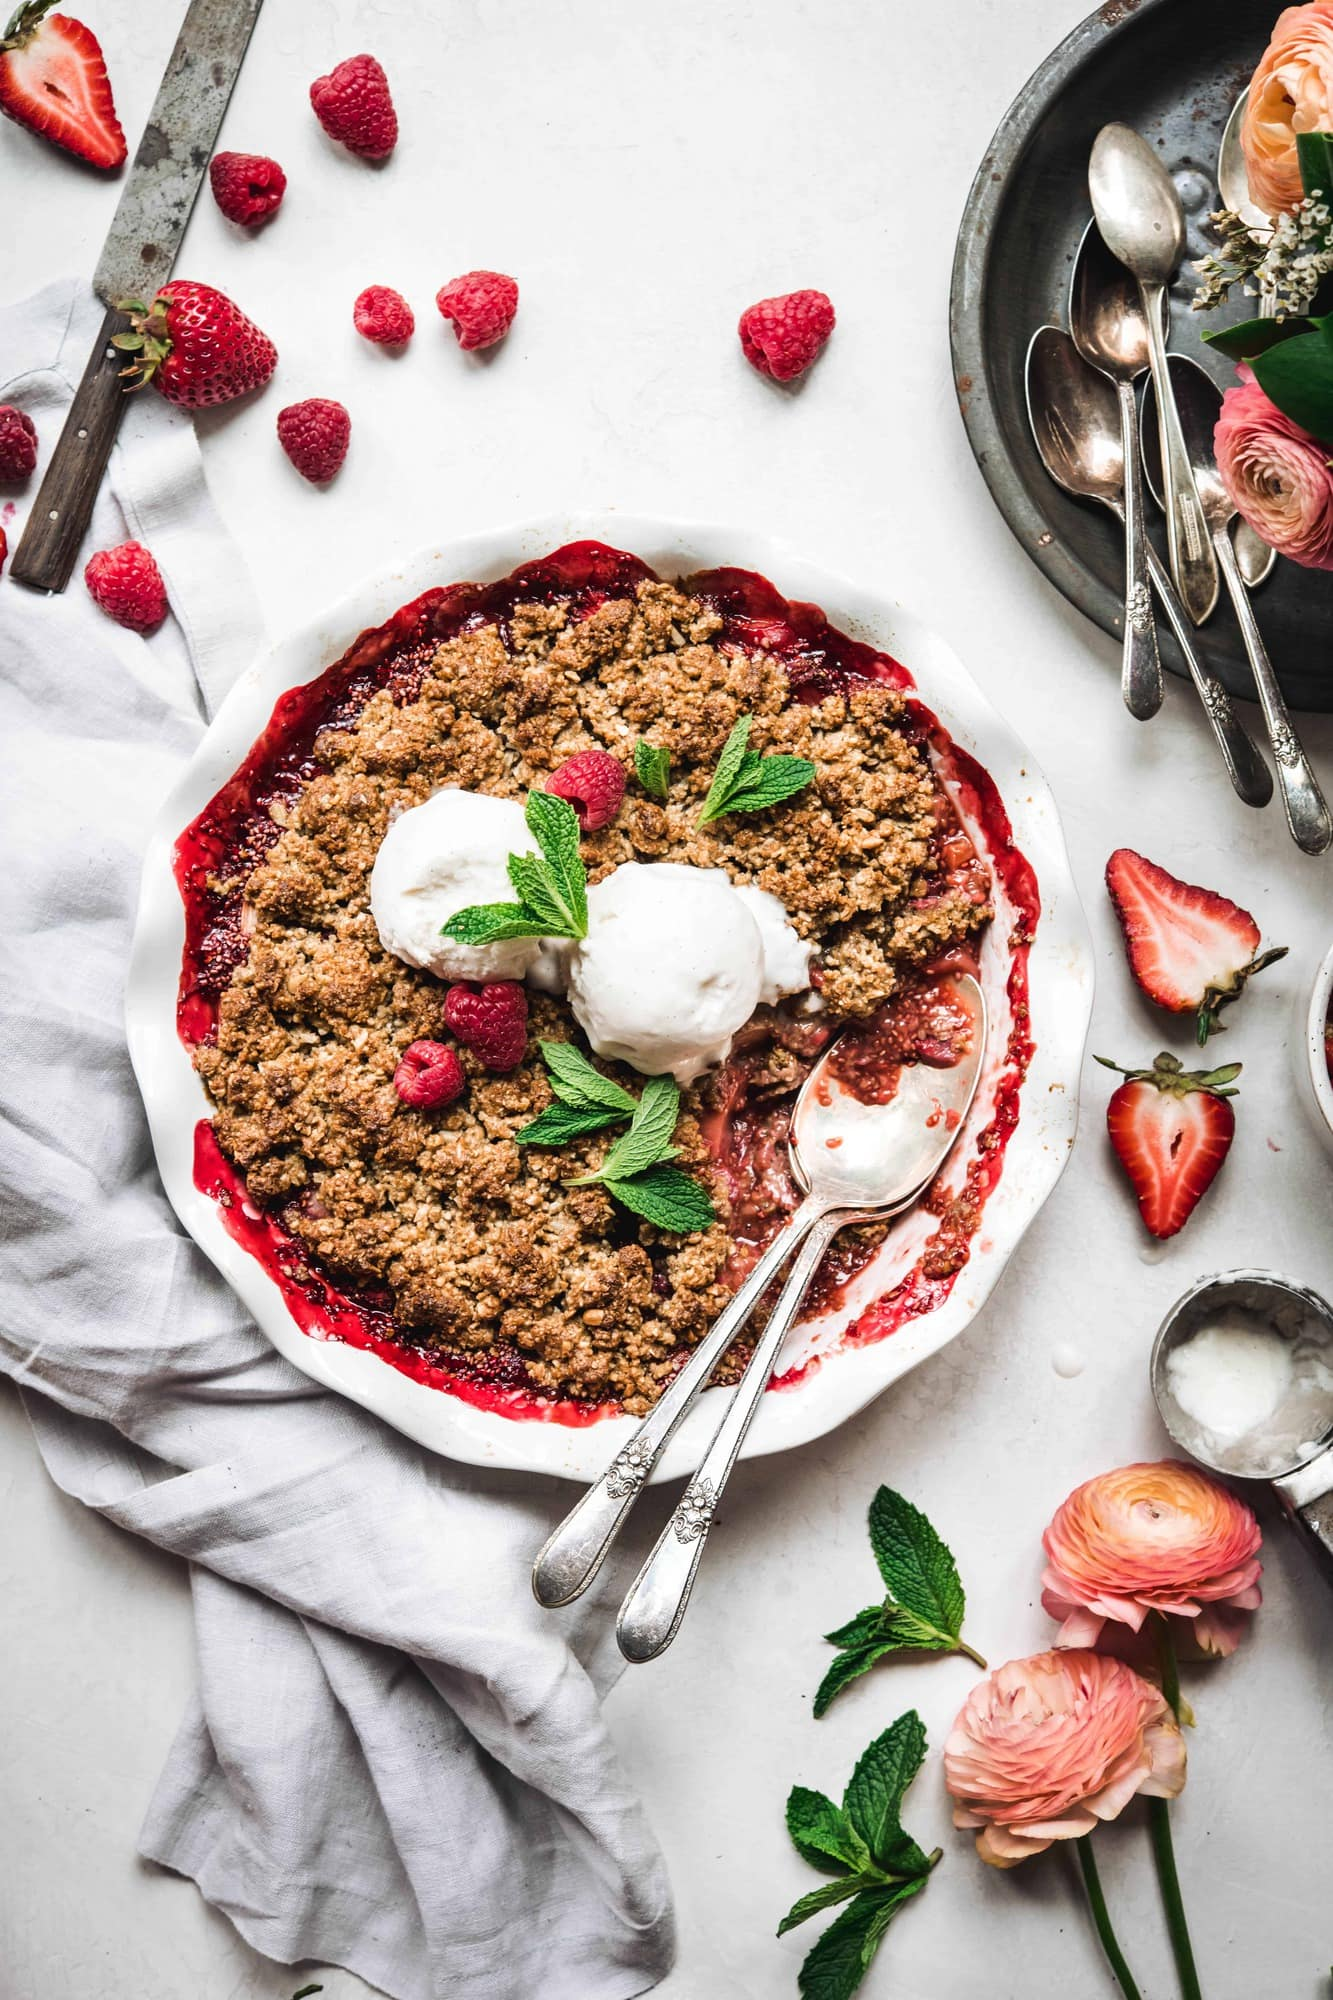 Overhead view of Vegan Strawberry Rhubarb Crumble topped with vanilla ice cream and mint on white background